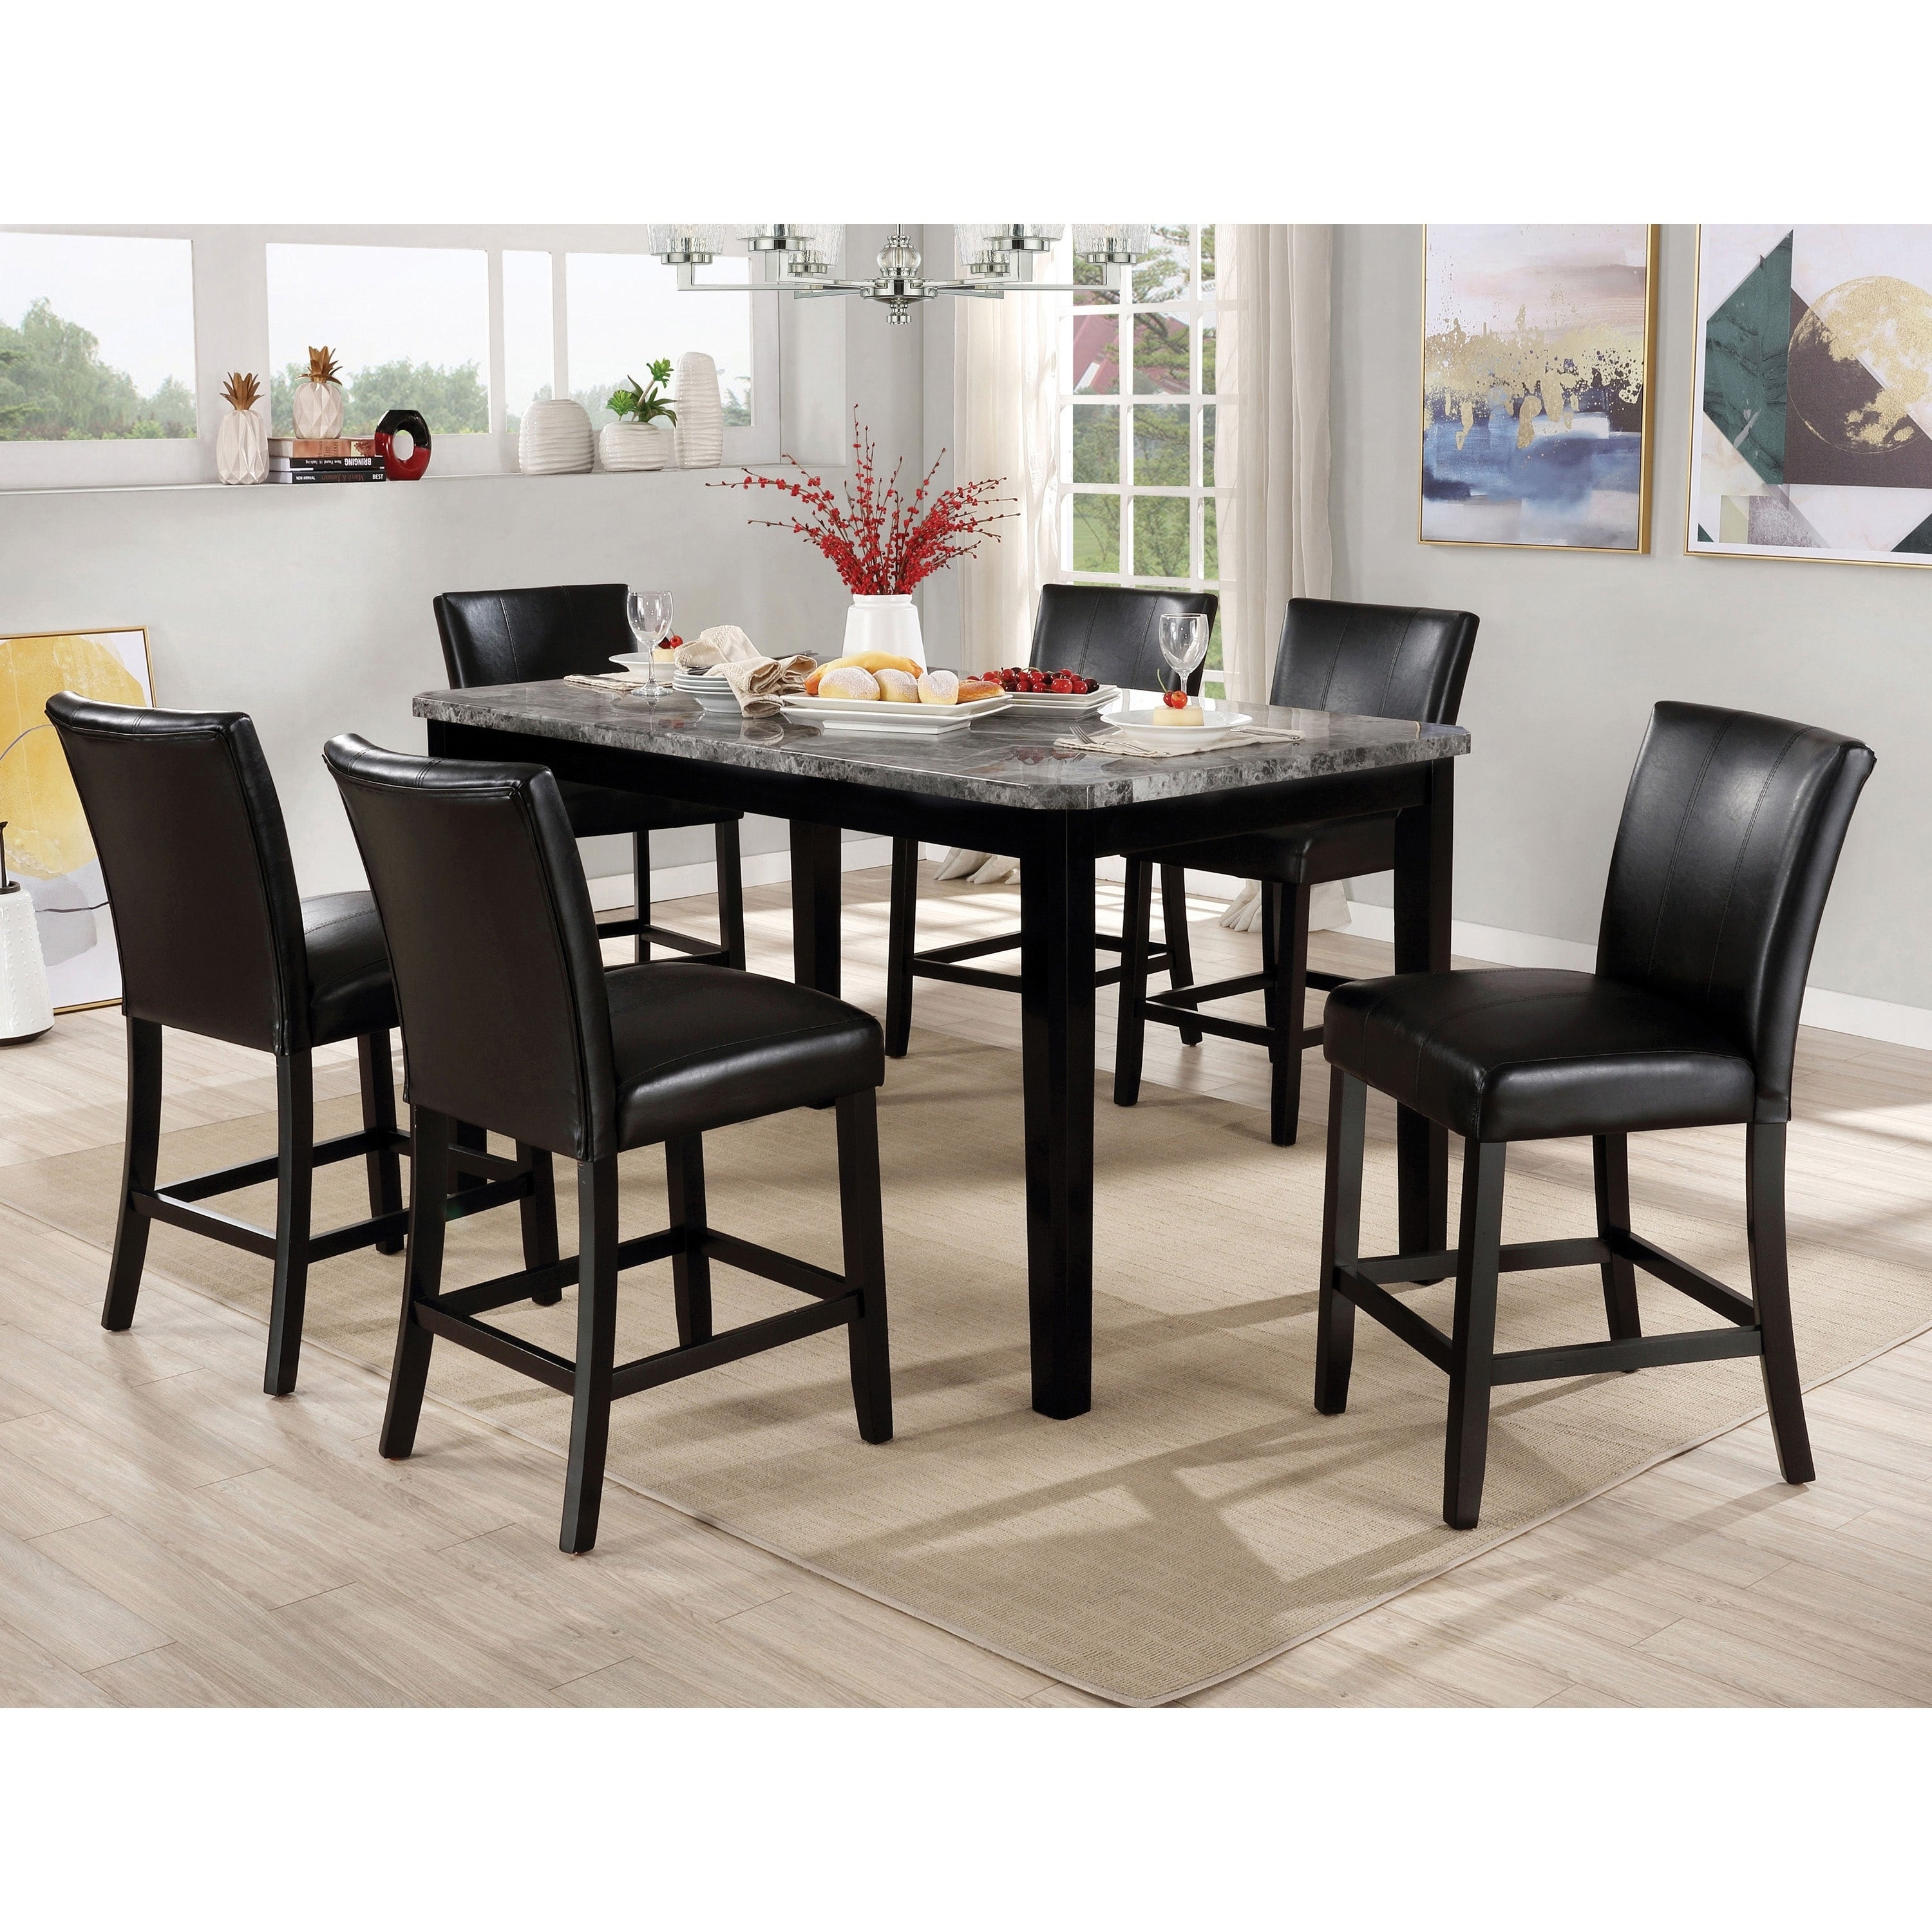 Furniture Of America Mis Contemporary Black 7 Piece Counter Dining Set Overstock 29726505